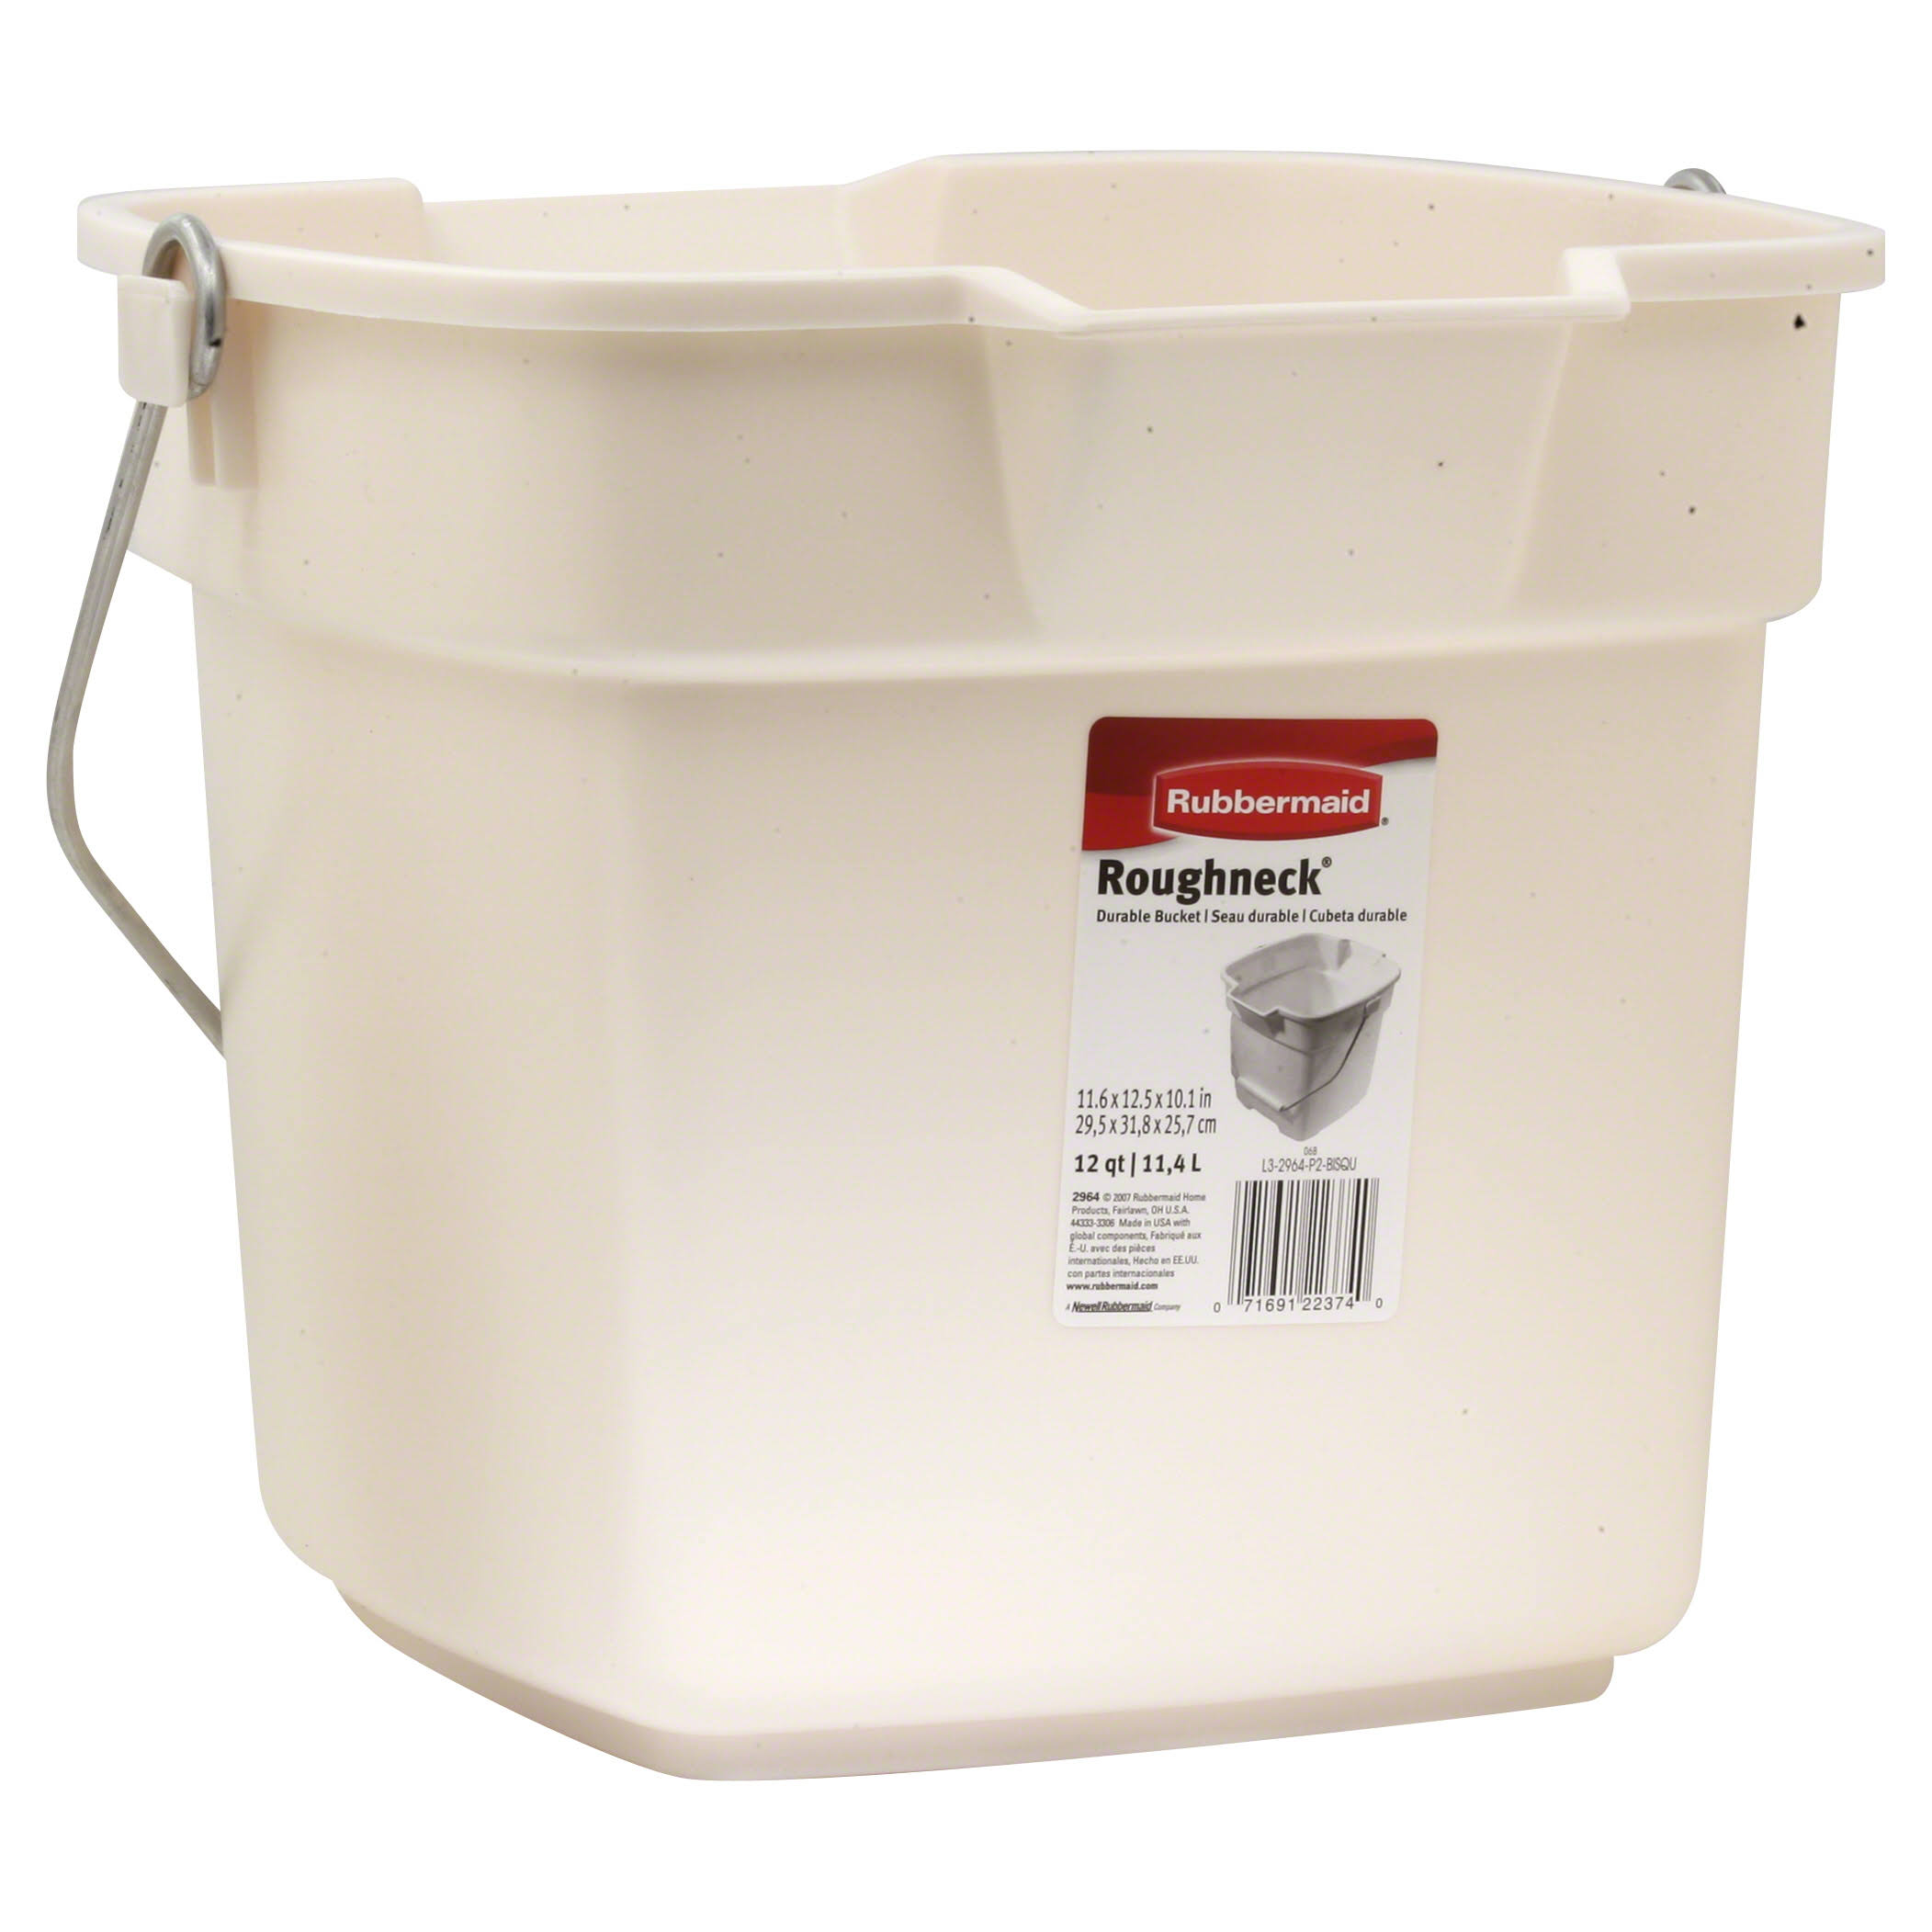 Rubbermaid 296400bisqu Roughneck Heavy Duty Utility Bucket - Bisque, 12qt